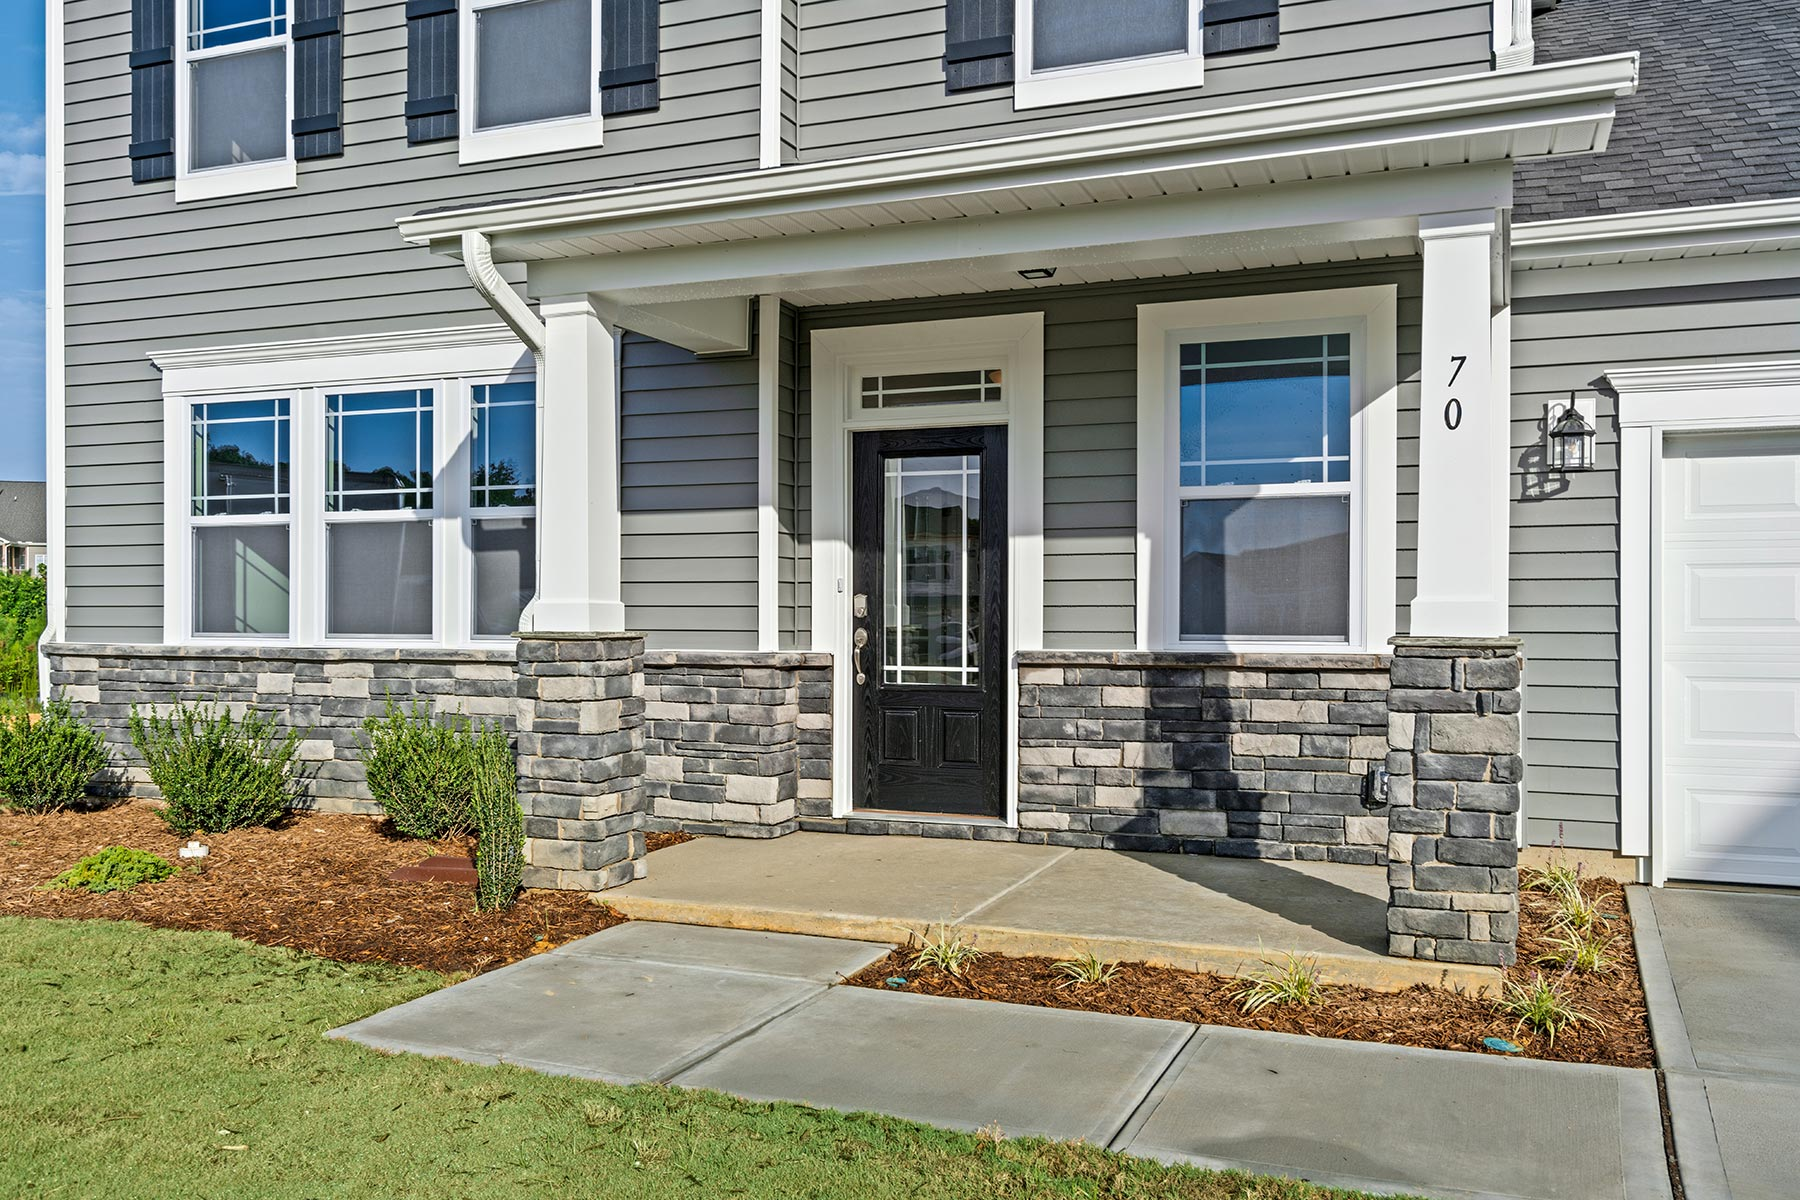 Winston Plan Front Porch at Ballentine Place in Holly Springs North Carolina by Mattamy Homes